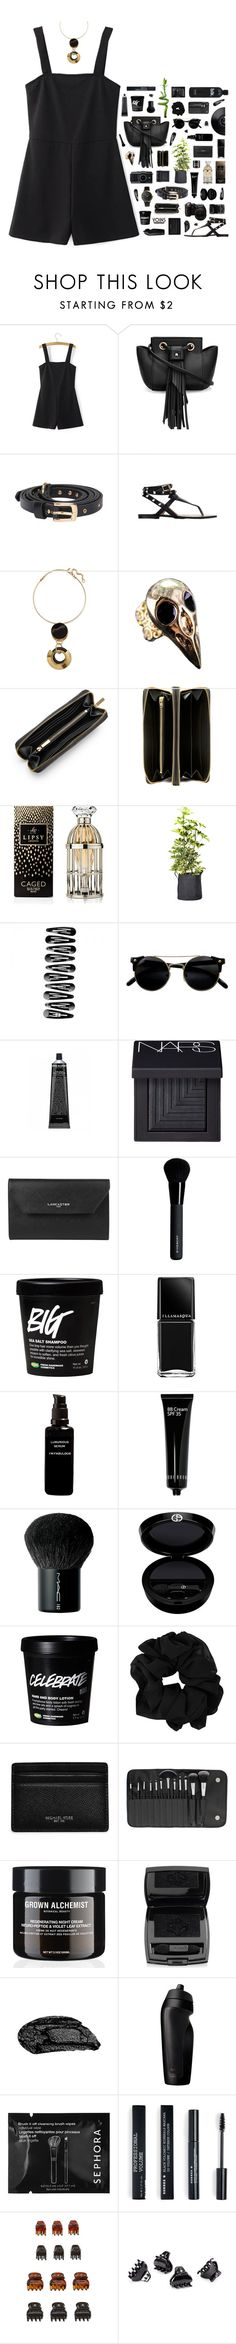 """""""Yoins // Cure"""" by blood-drops ❤ liked on Polyvore featuring Marni, Tory Burch, Comme des Garçons, Lipsy, PLANT, NARS Cosmetics, Lancaster, Leica, Givenchy and Illamasqua"""